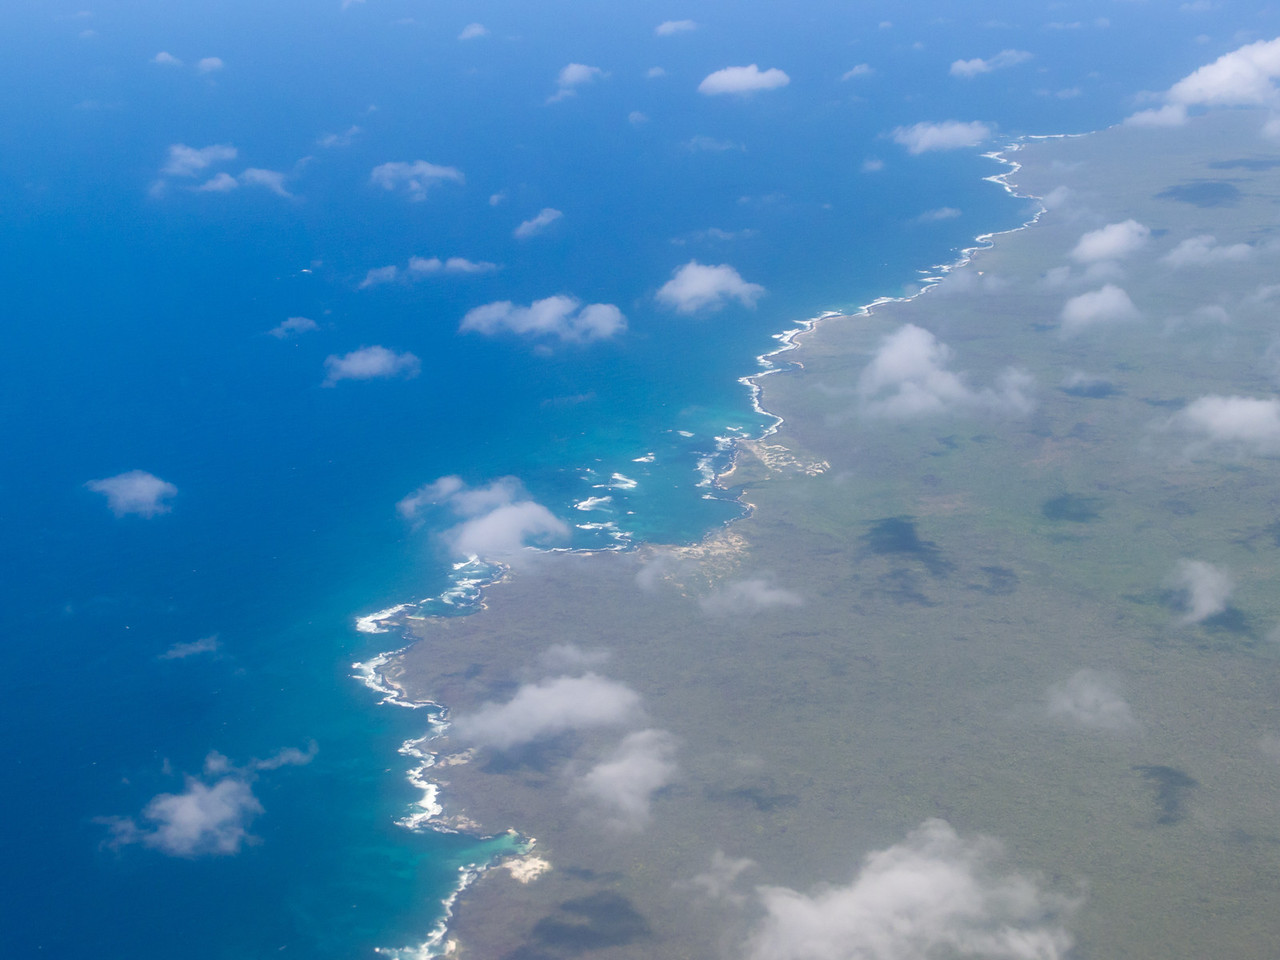 Our first look at the Galapagos Islands, flying from Quito